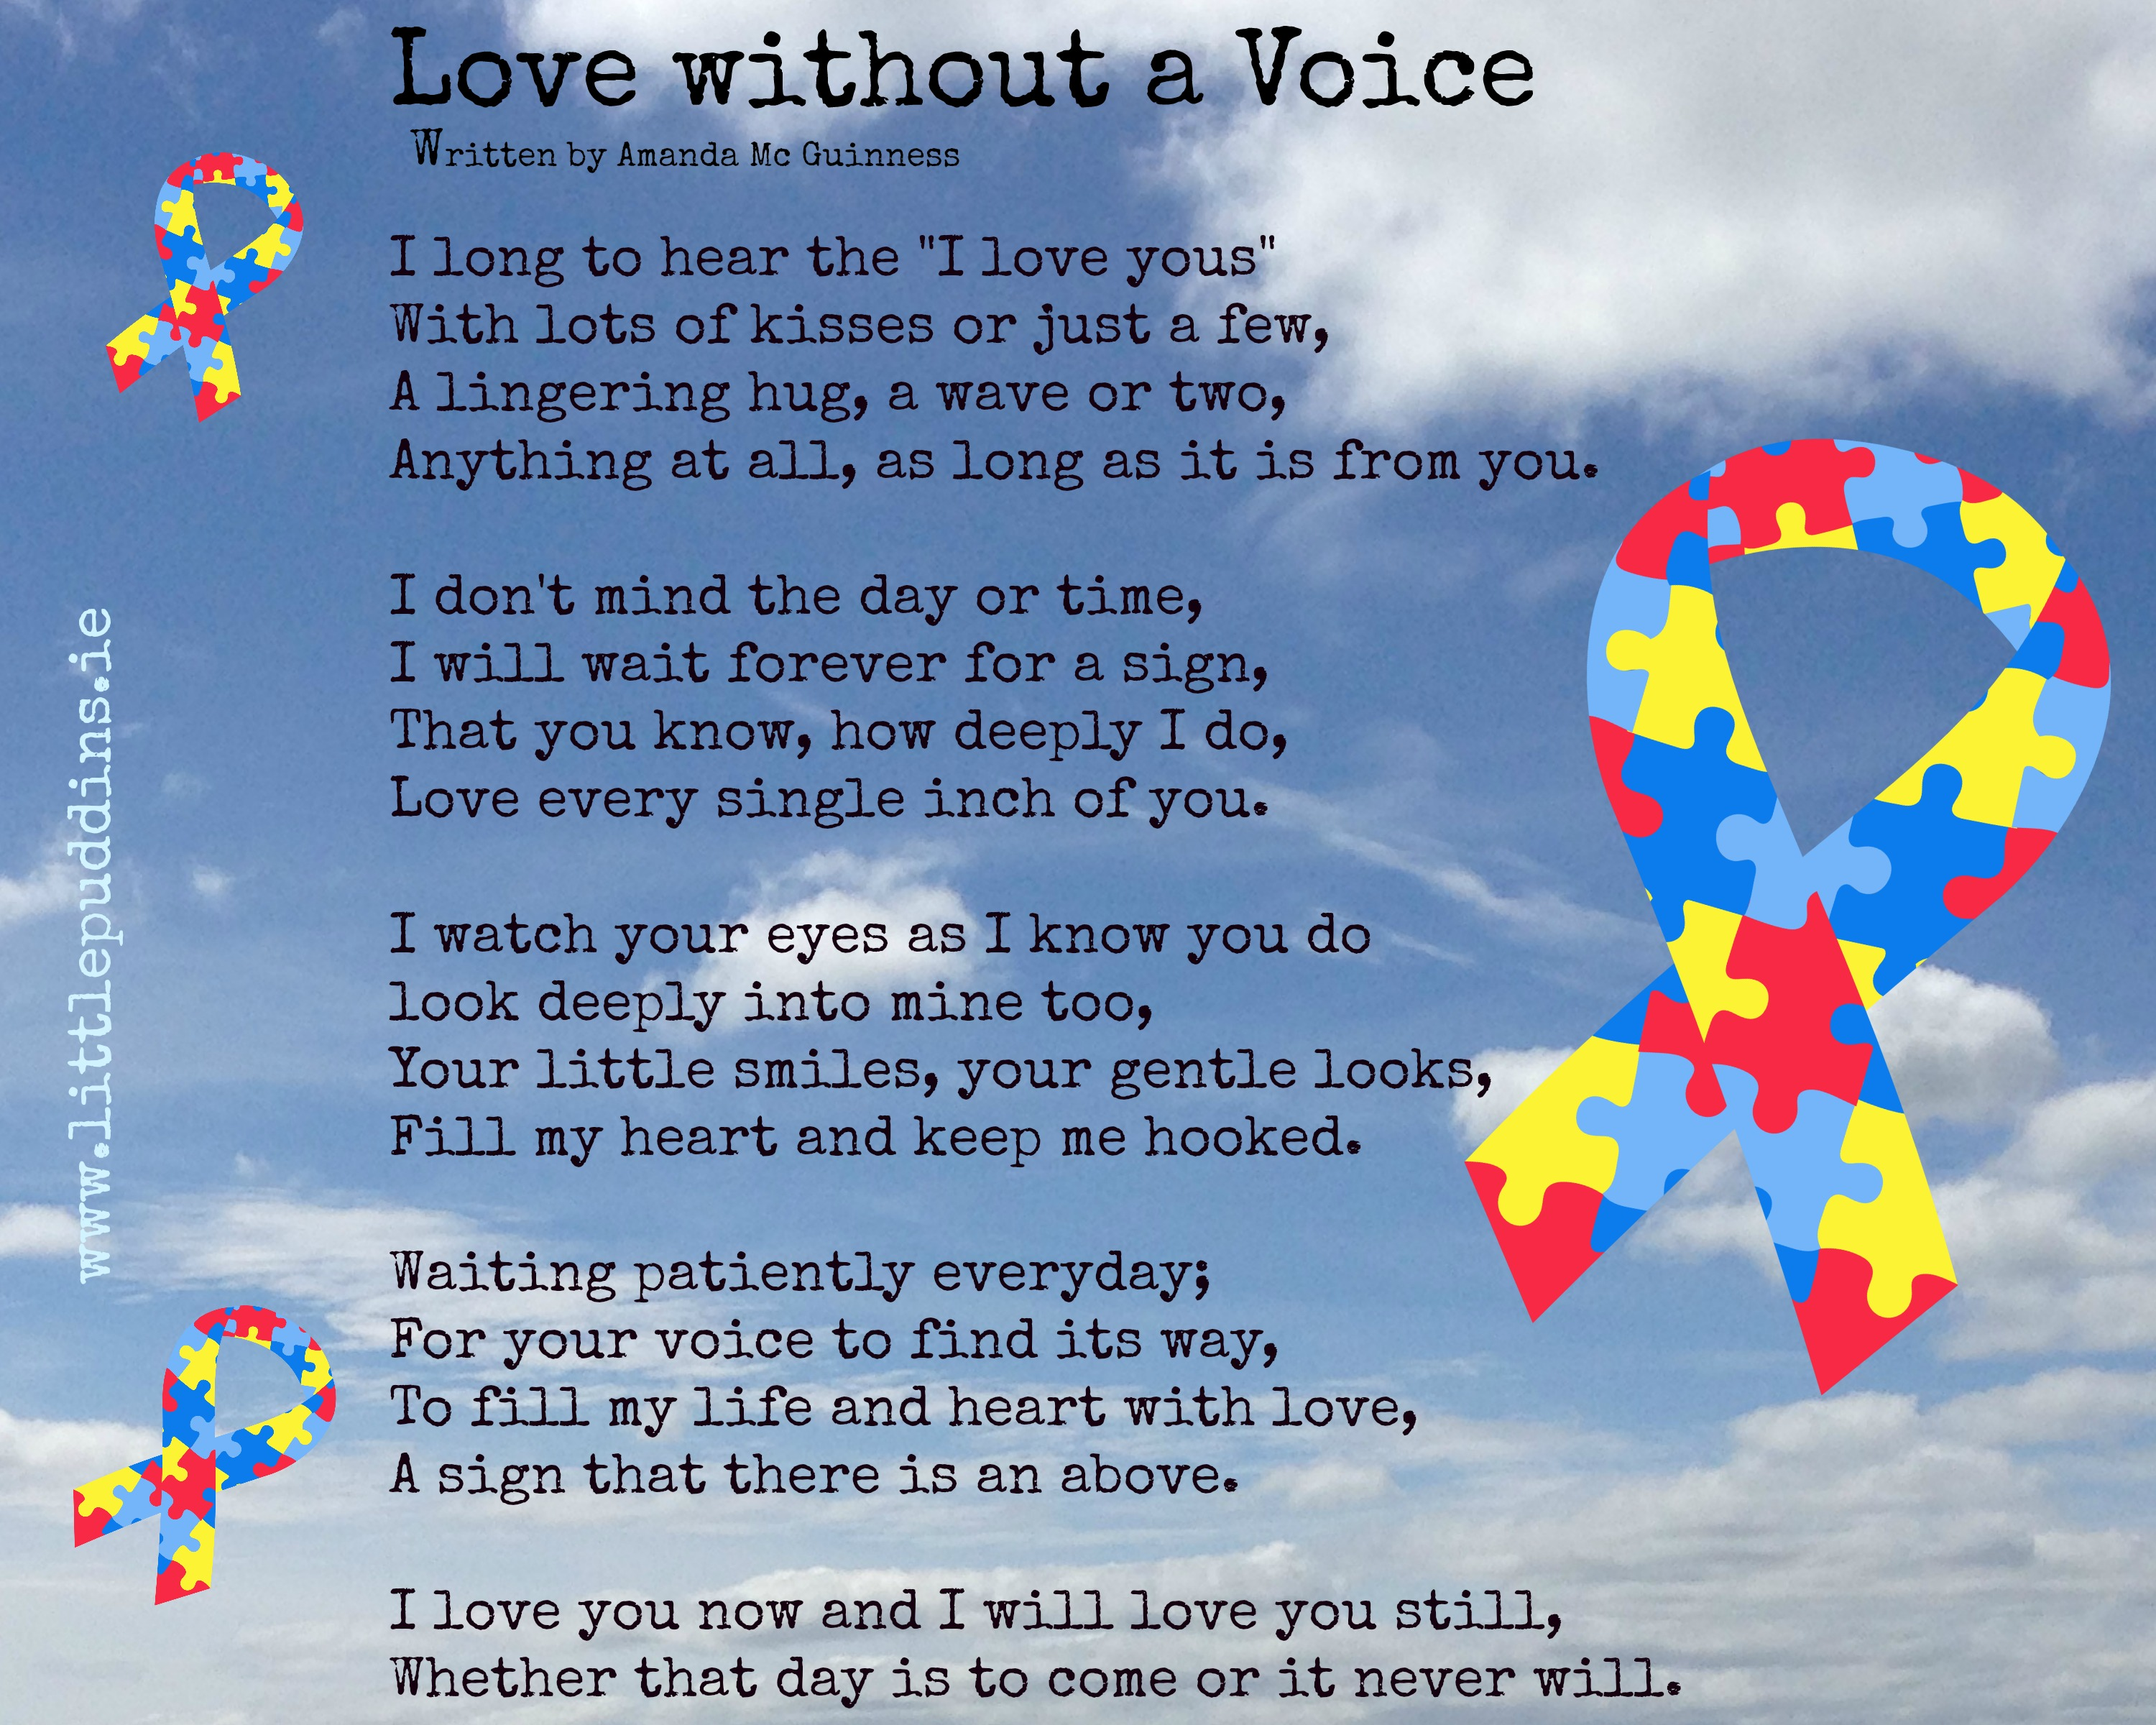 For Conor.x